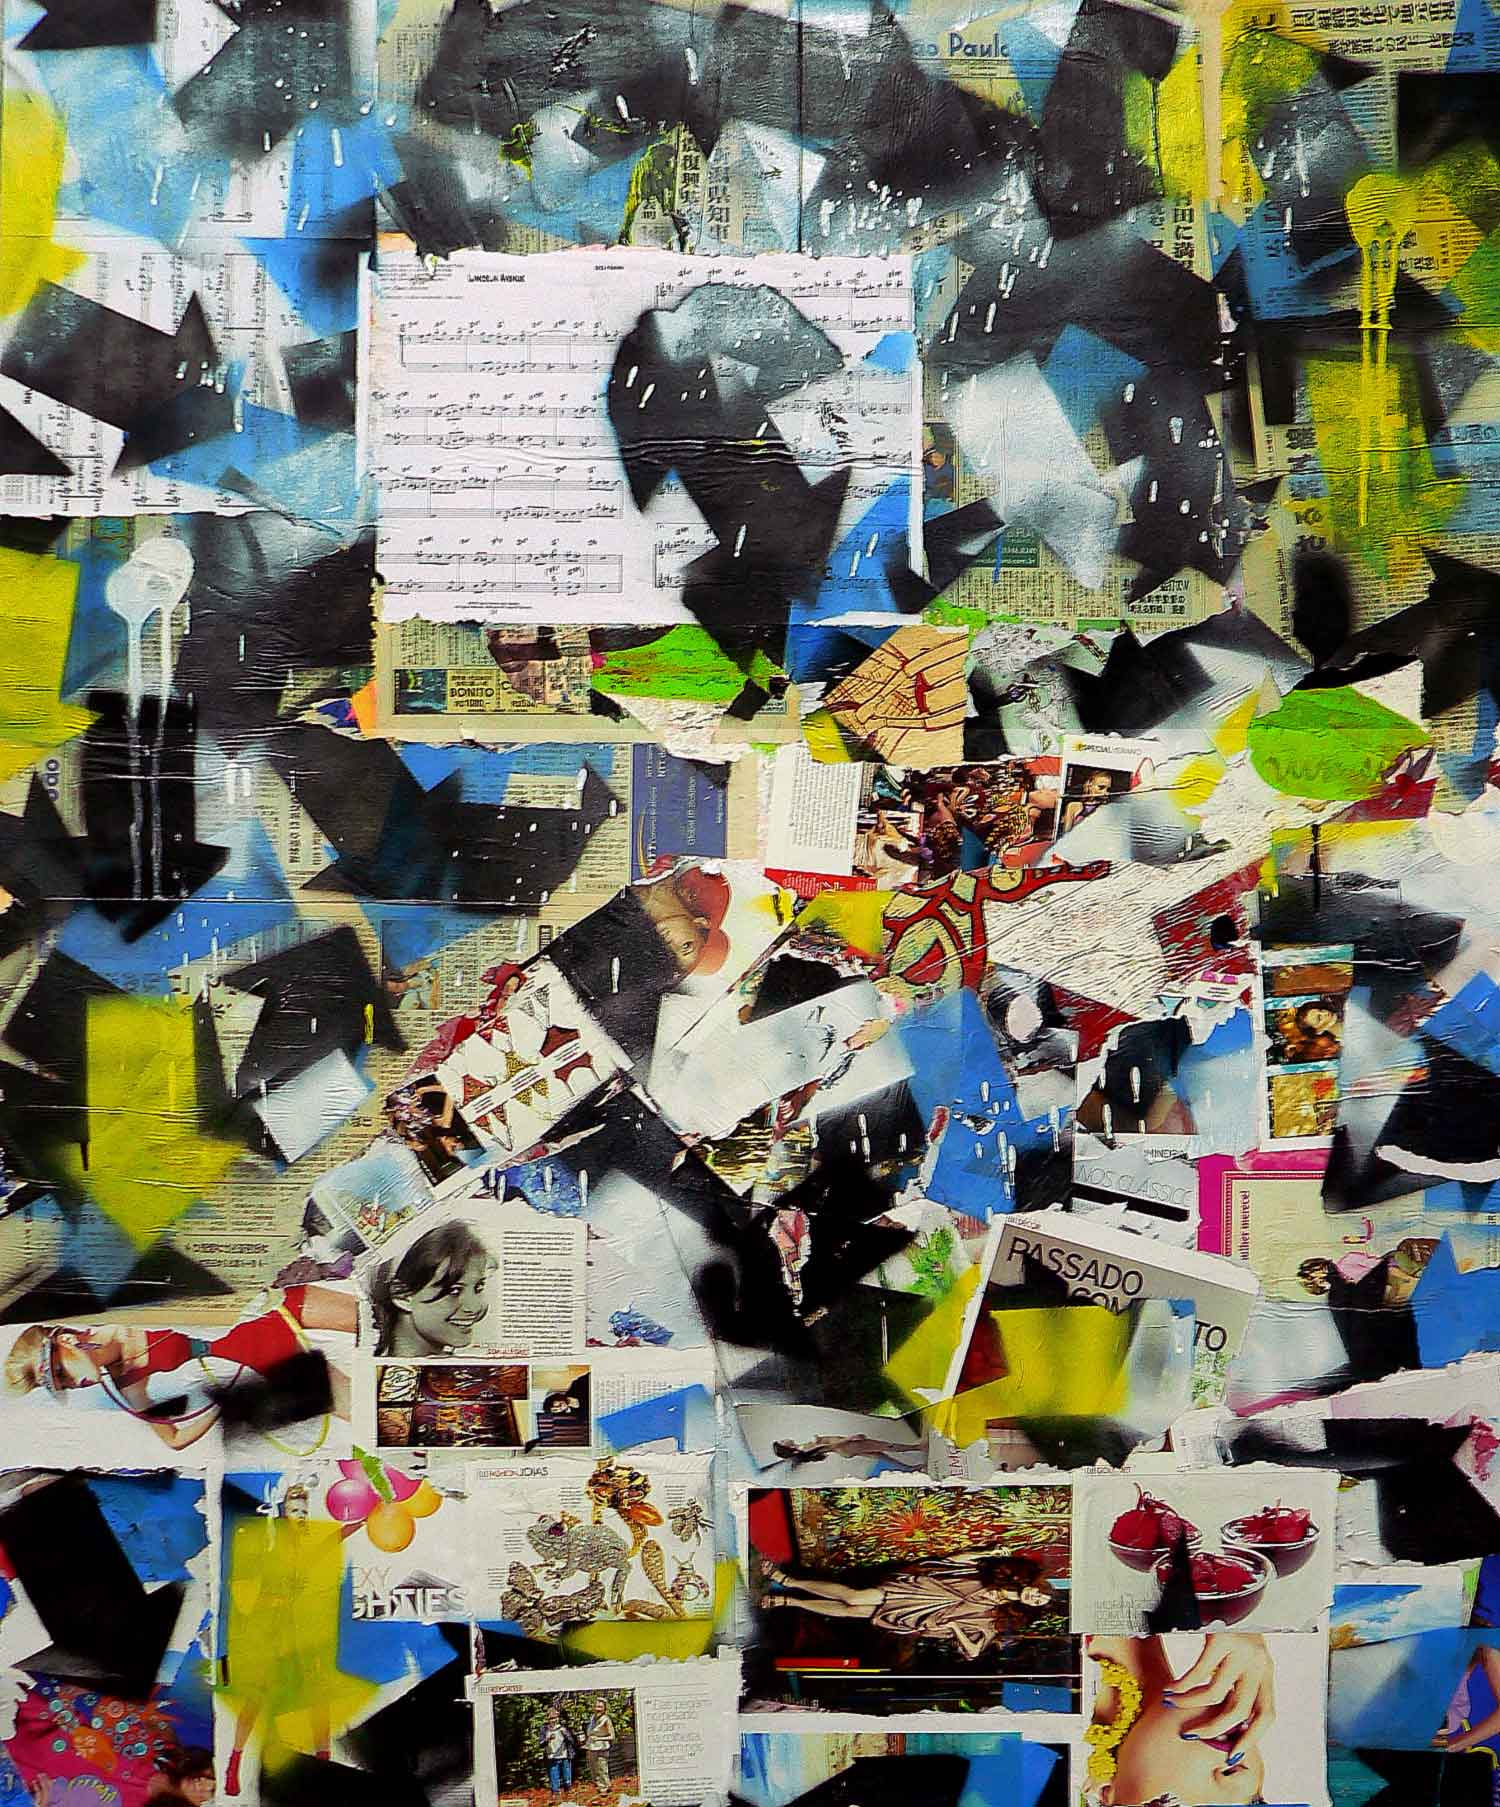 passado - 180 x 120 cm - spray paint, markers and collage on canvas - 2010